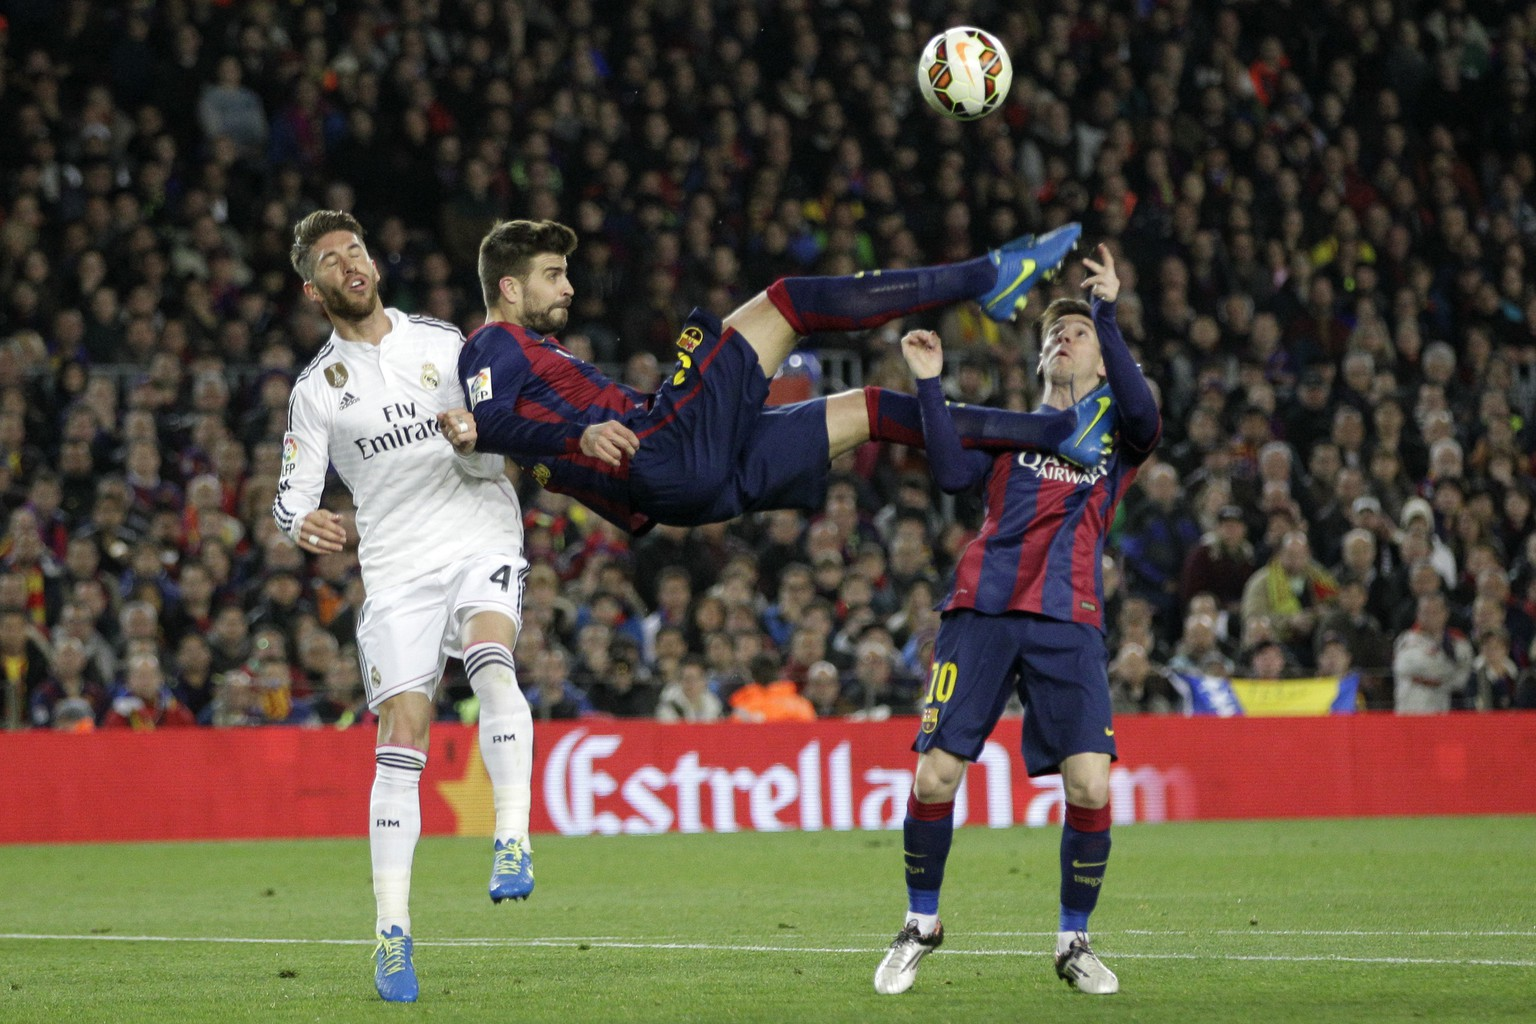 FILE- In this Sunday, March 22, 2015 file photo, Barcelona's Gerard Pique kicks the ball with Real Madrid's Sergio Ramos, left, and Barcelona's Lionel Messi, right, during a Spanish La Liga soccer match between FC Barcelona and Real Madrid at Camp Nou stadium, in Barcelona, Spain. A spat between Barcelona's Gerard Pique and Real Madrid's Sergio Ramos has added fuel to a heated title race. (AP Photo/Emilio Morenatti, File)